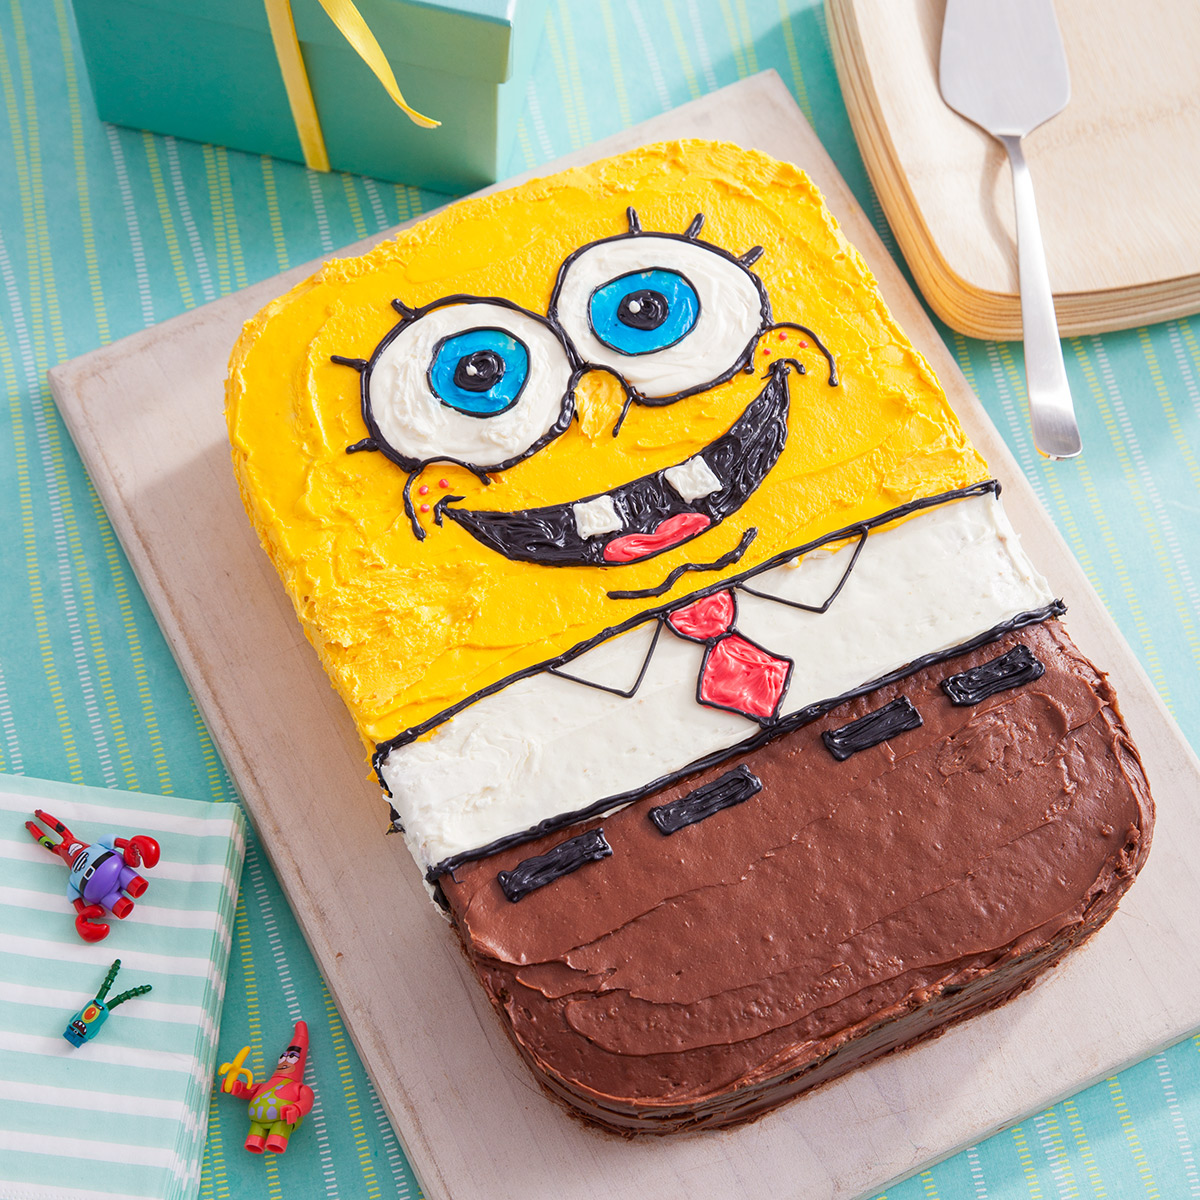 Plan A Spongebob Squarepants Party on birthday cupcake ideas